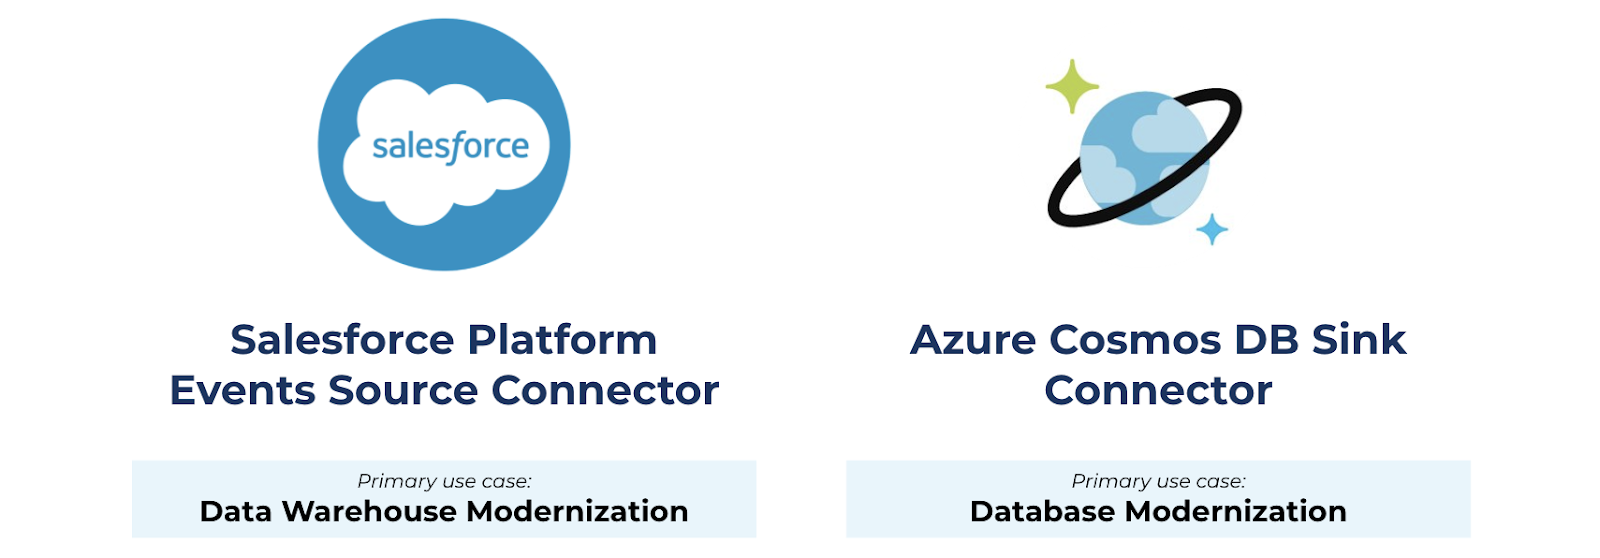 Confluent is adding two new fully managed connectors for modern SaaS platforms and cloud ecosystems